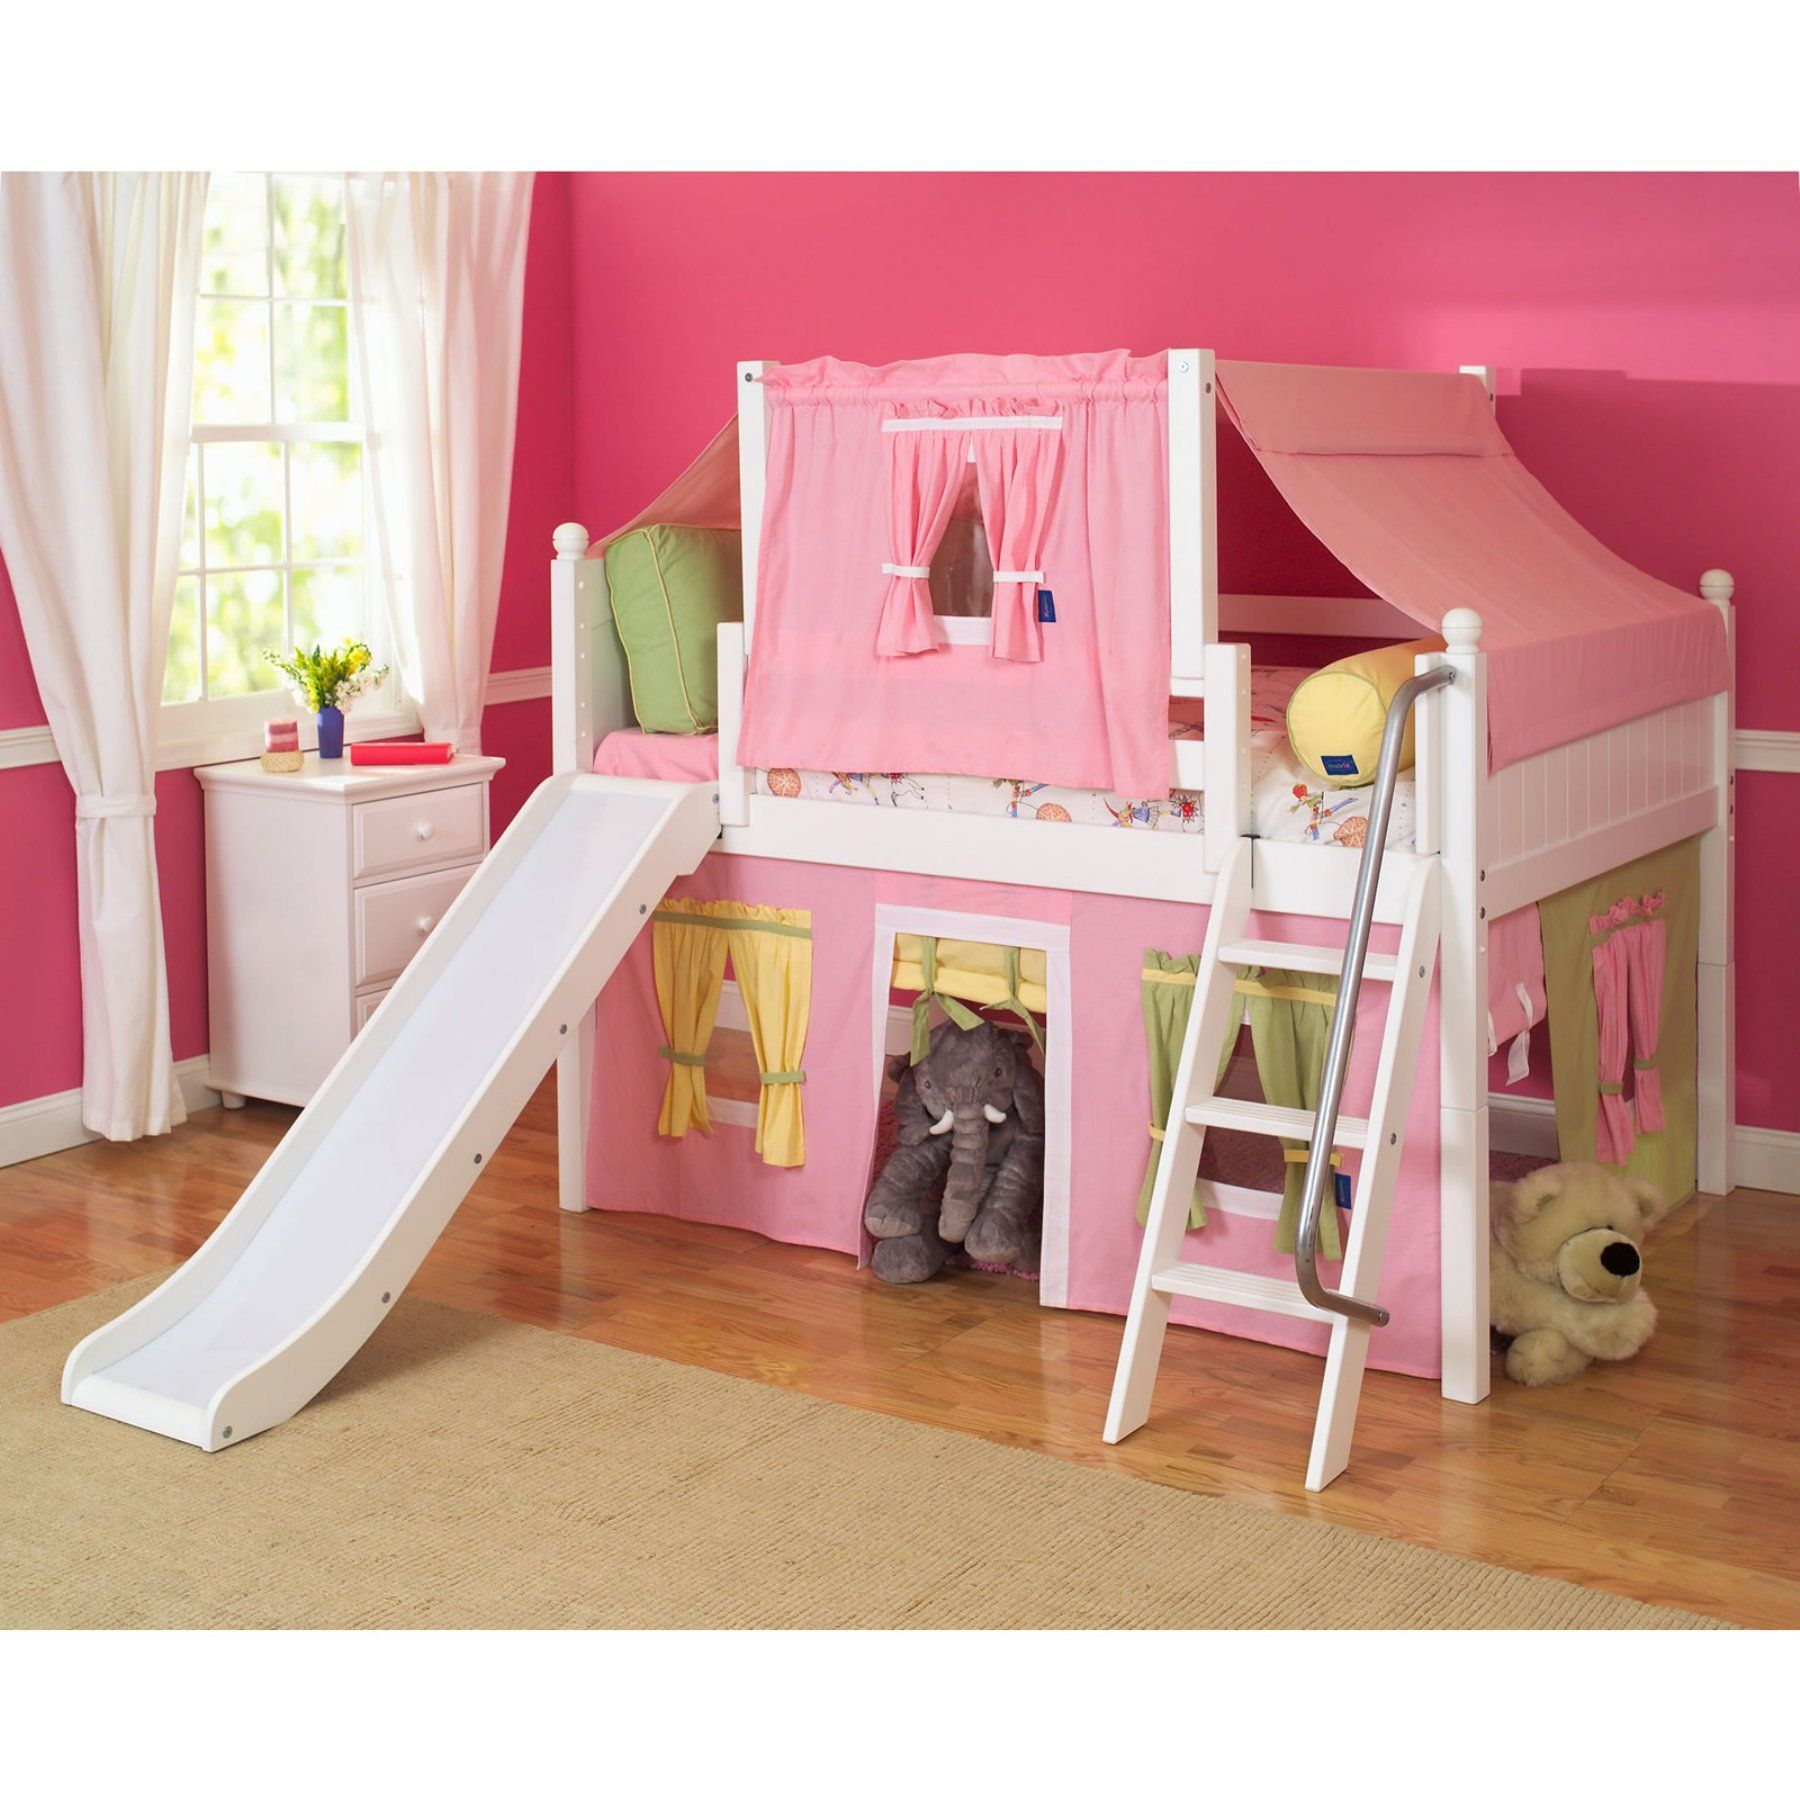 Loft bed with slide and tent  Wow Girl II Deluxe Panel Low Loft Tent Bed with Slide  MXTX